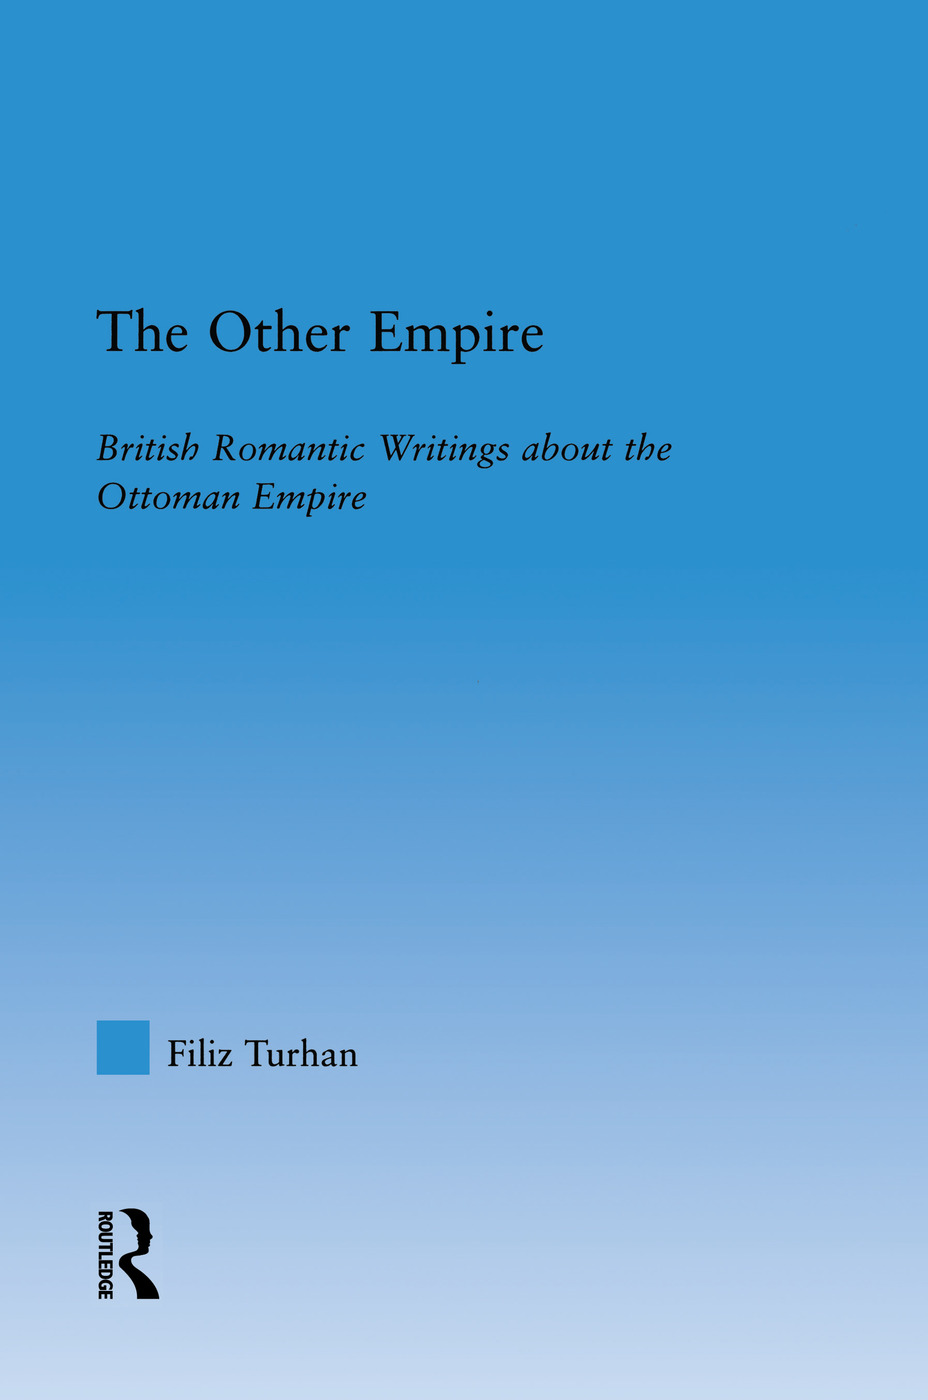 The Other Empire